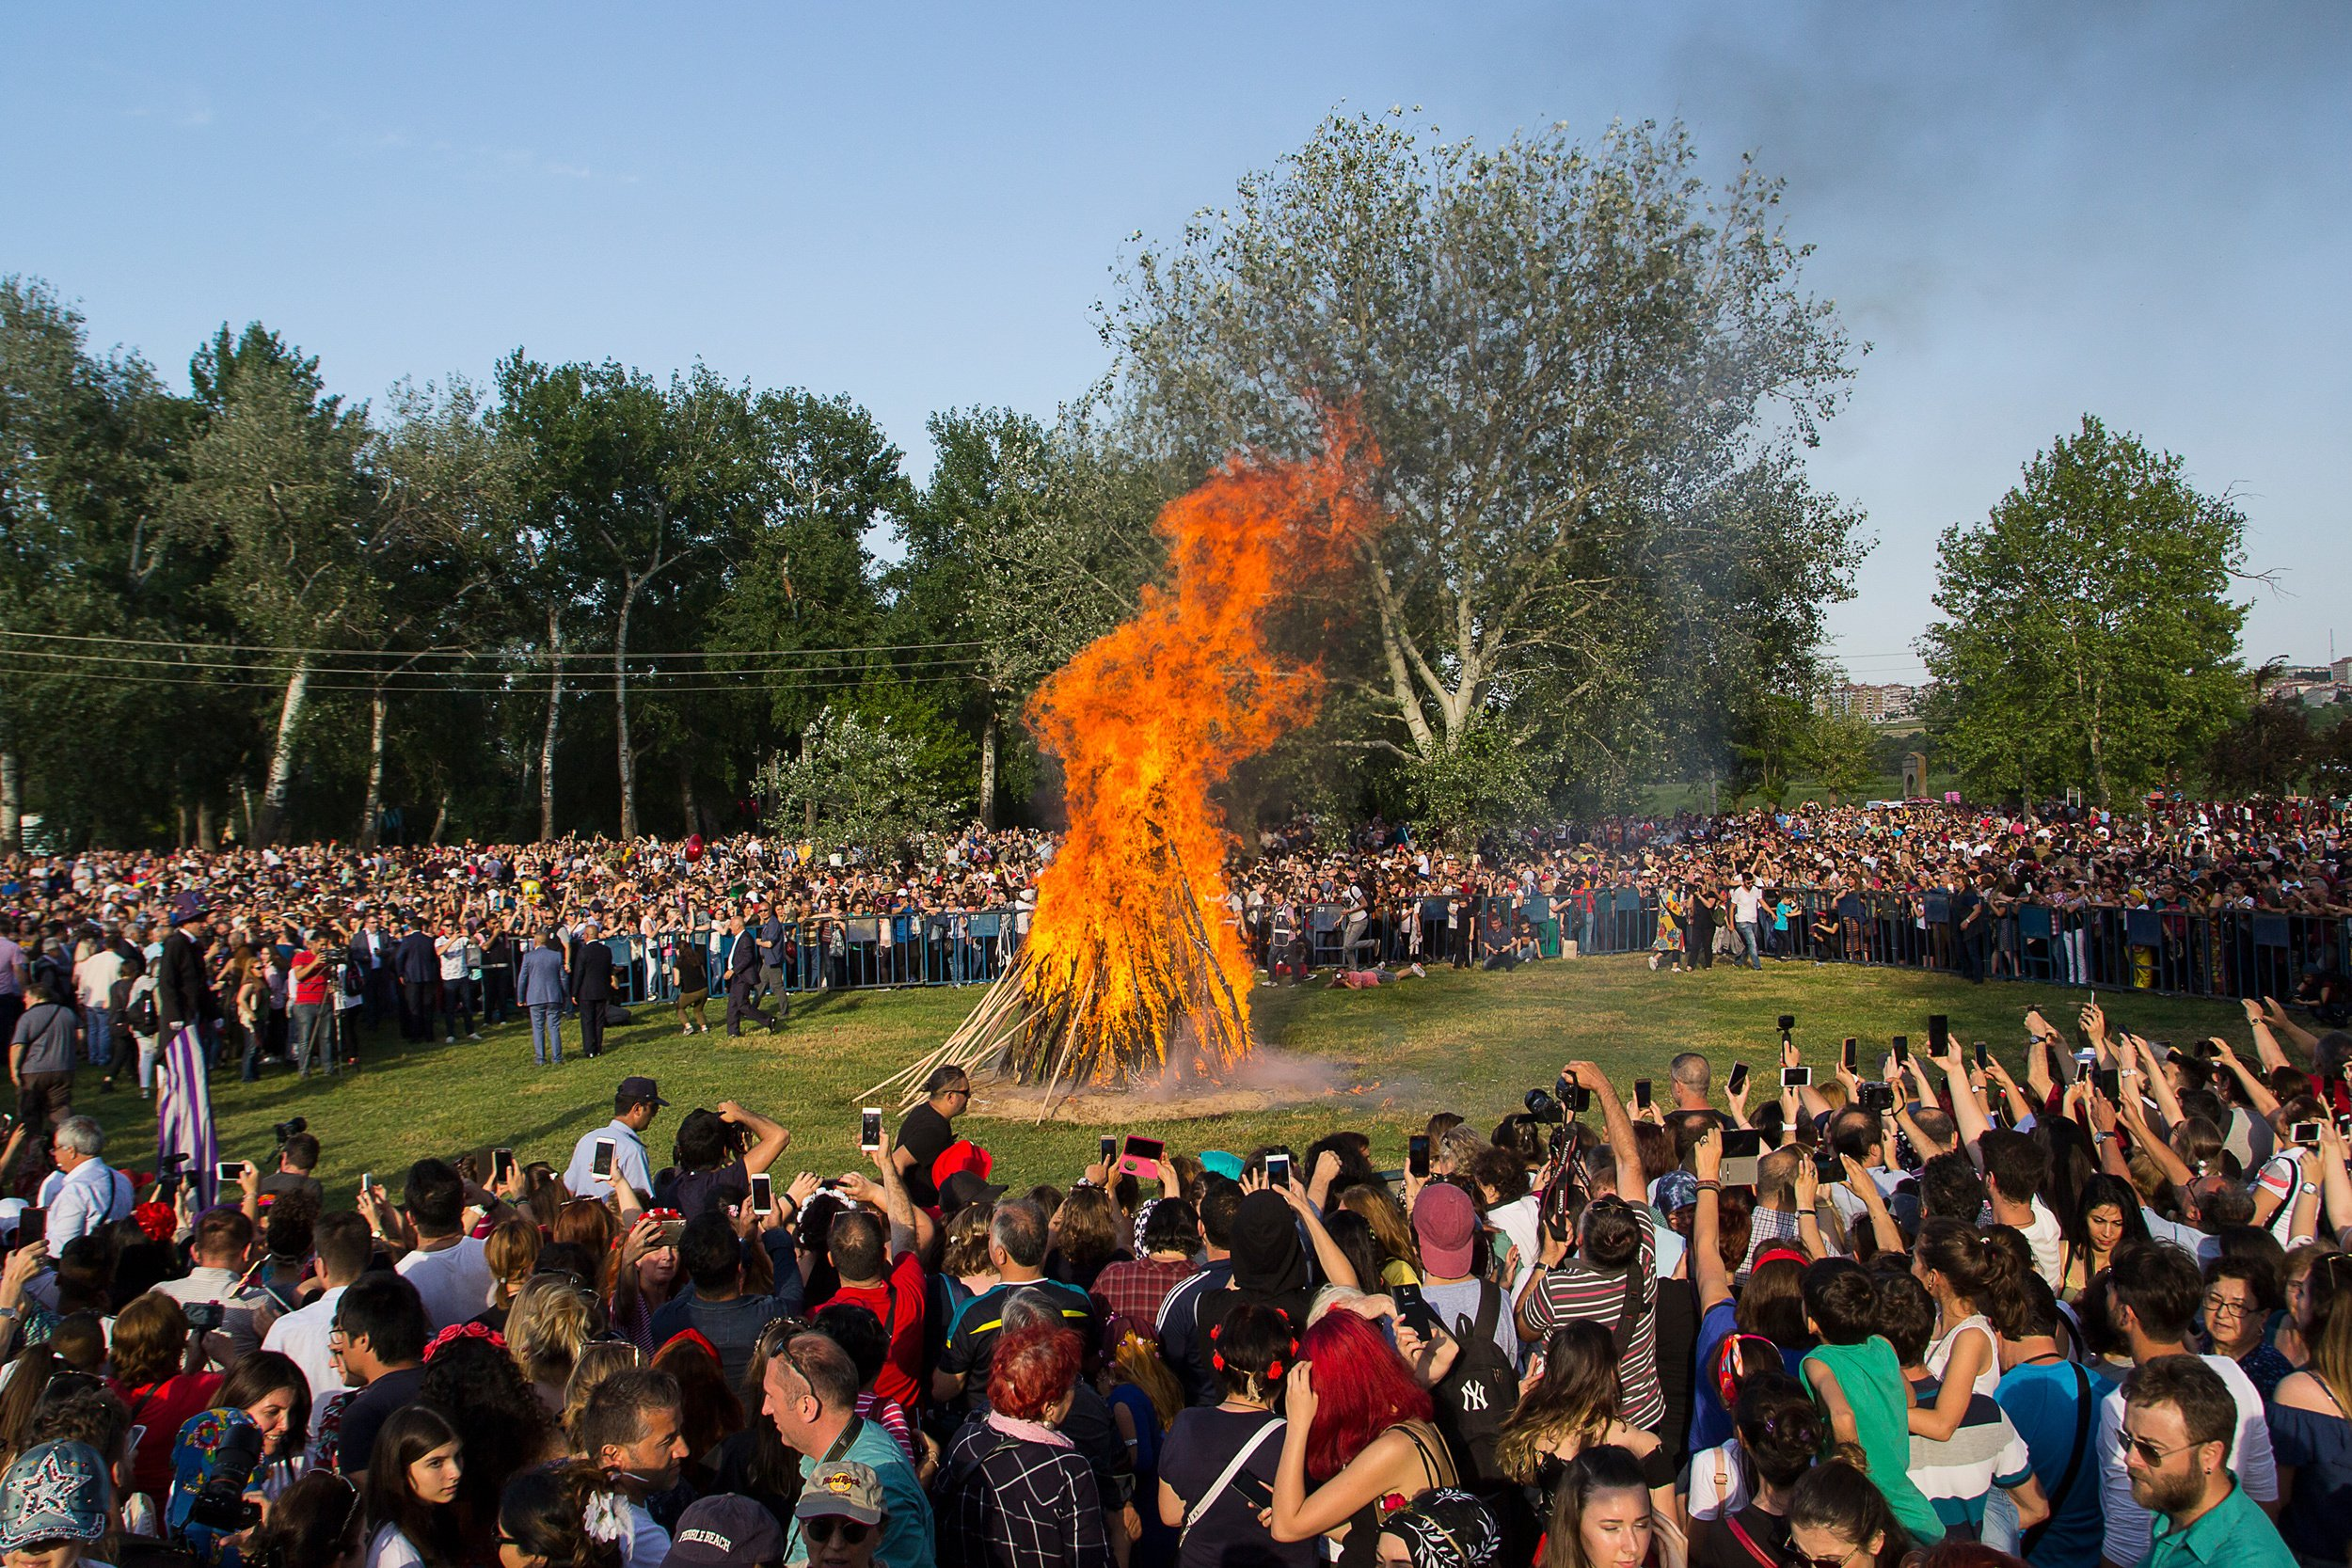 Fires in specially selected areas and jumping over it is a ritual during Hıdırellez. (Shutterstock Photo)